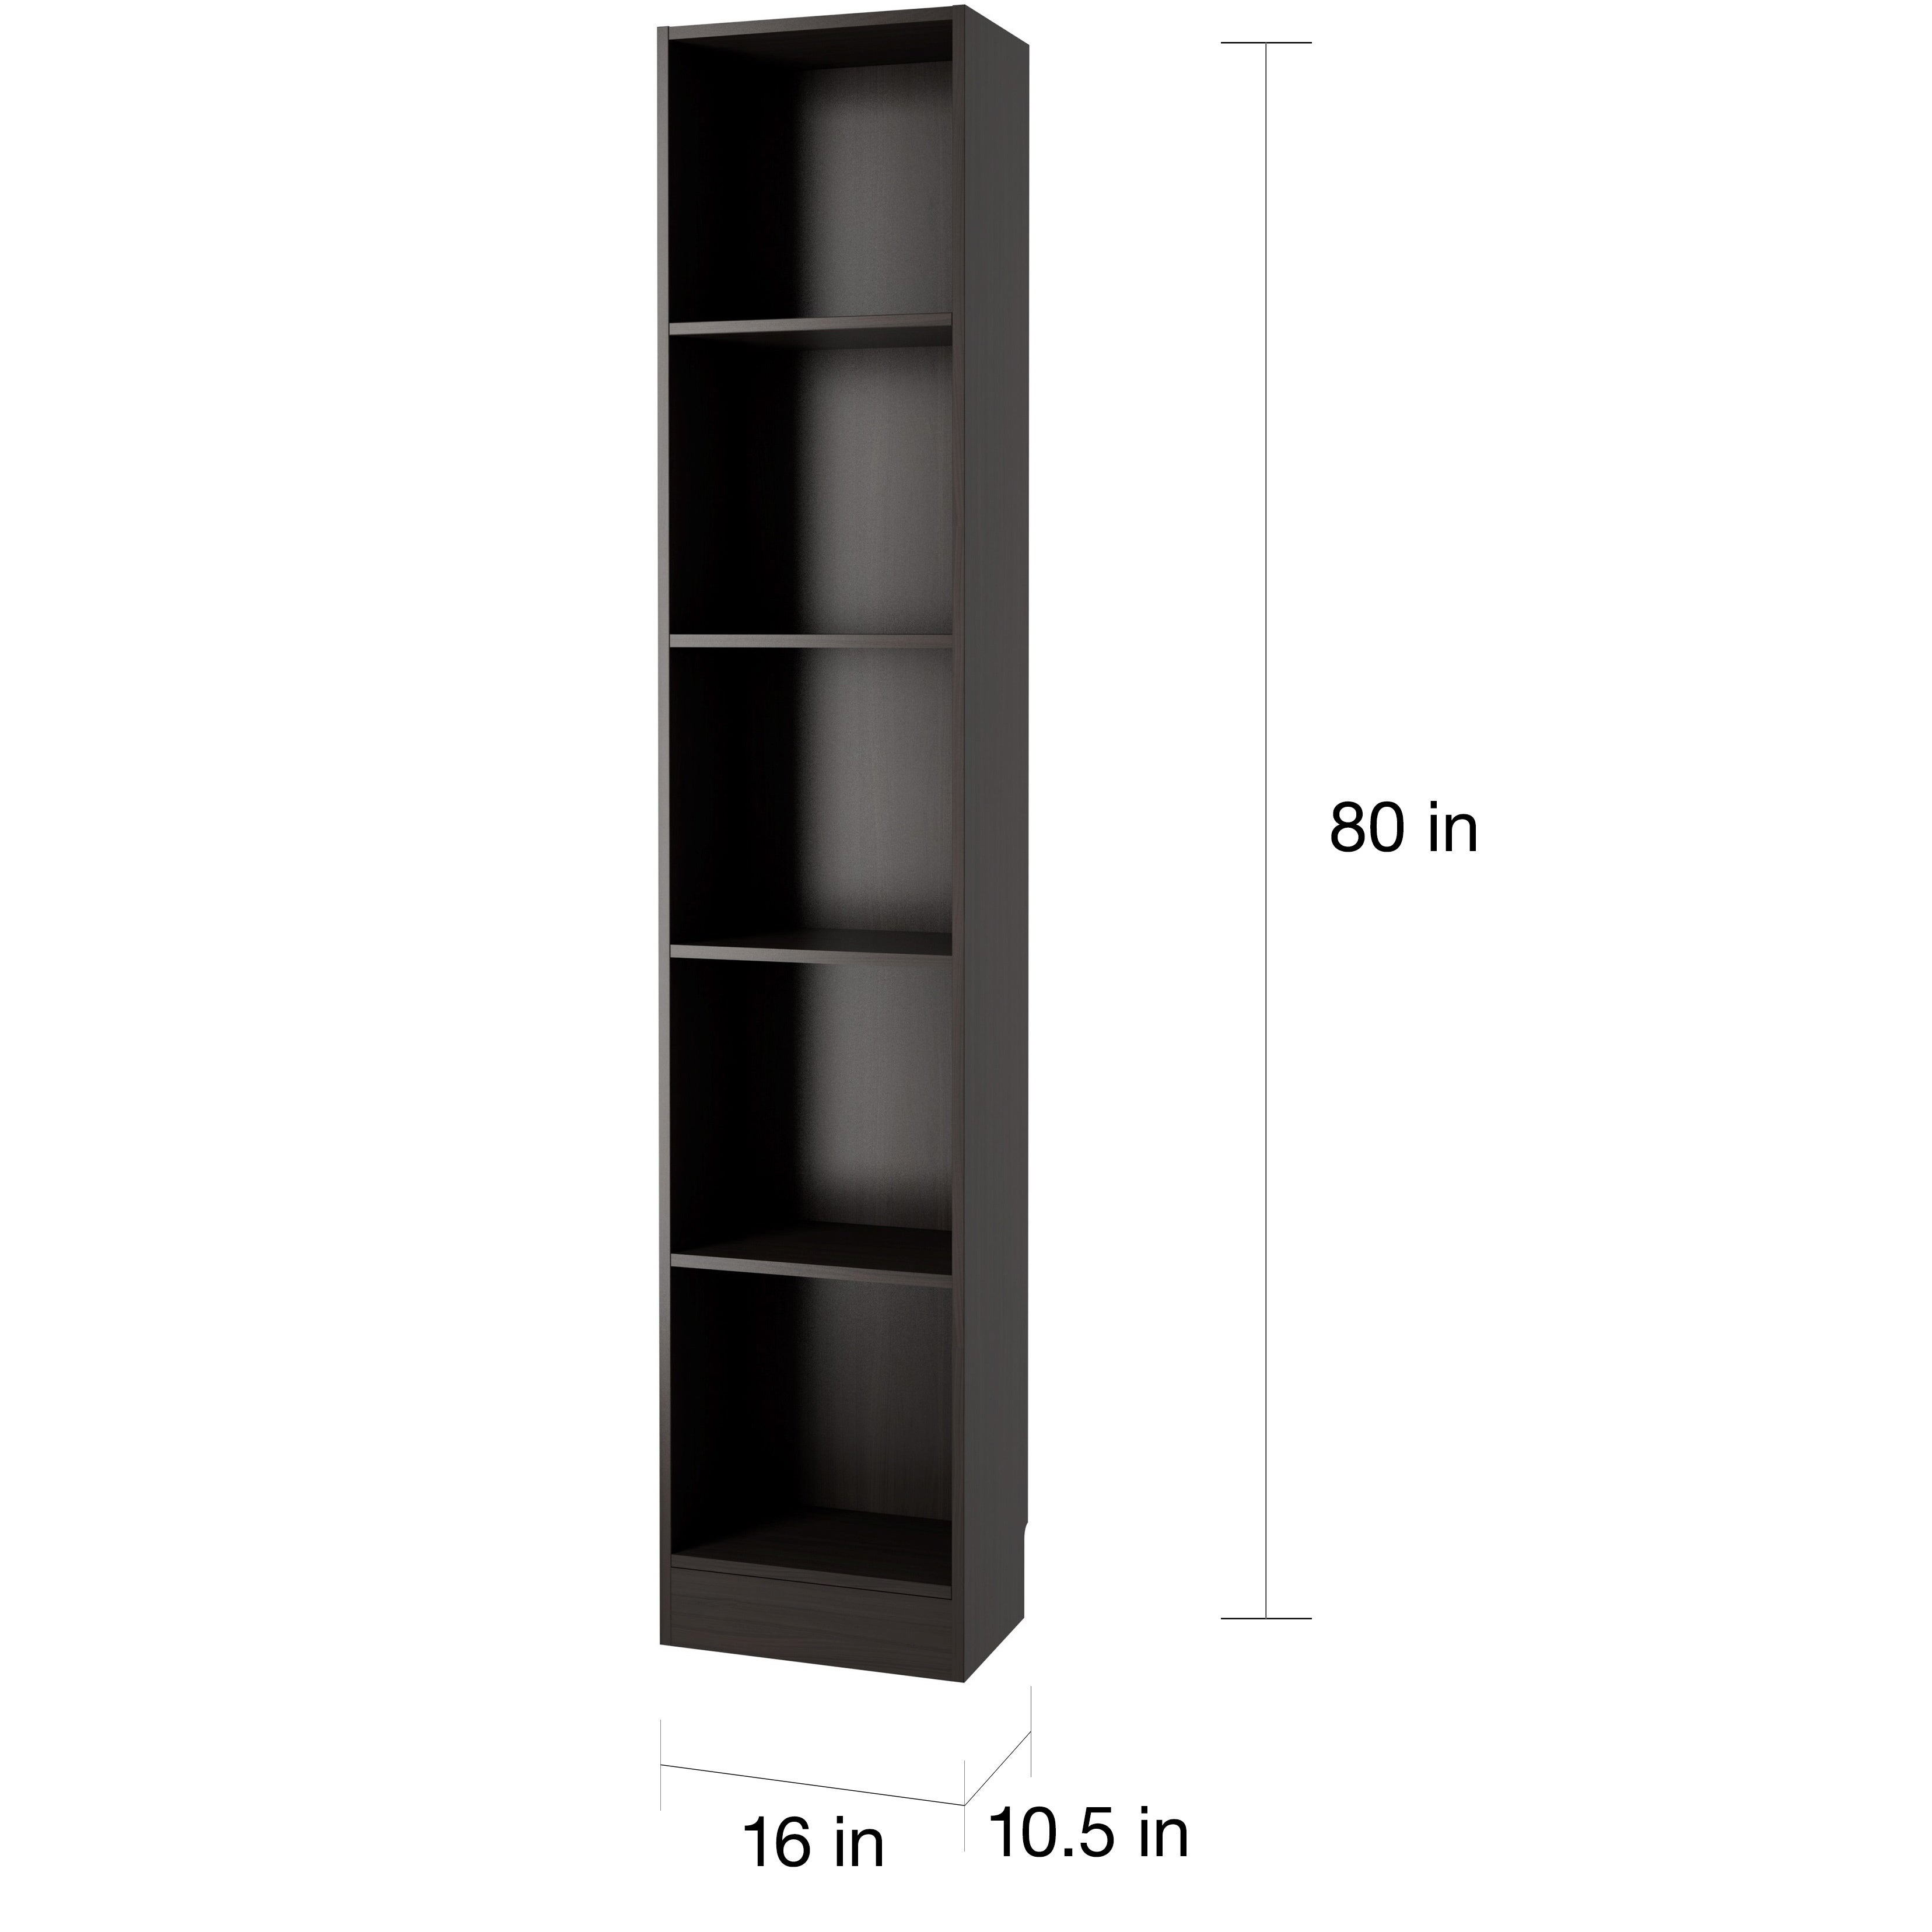 comfortable folding best corner stackable when and diy australia atmosphere bookshelf option metal is full a beyond antique of bed bath container size store you want